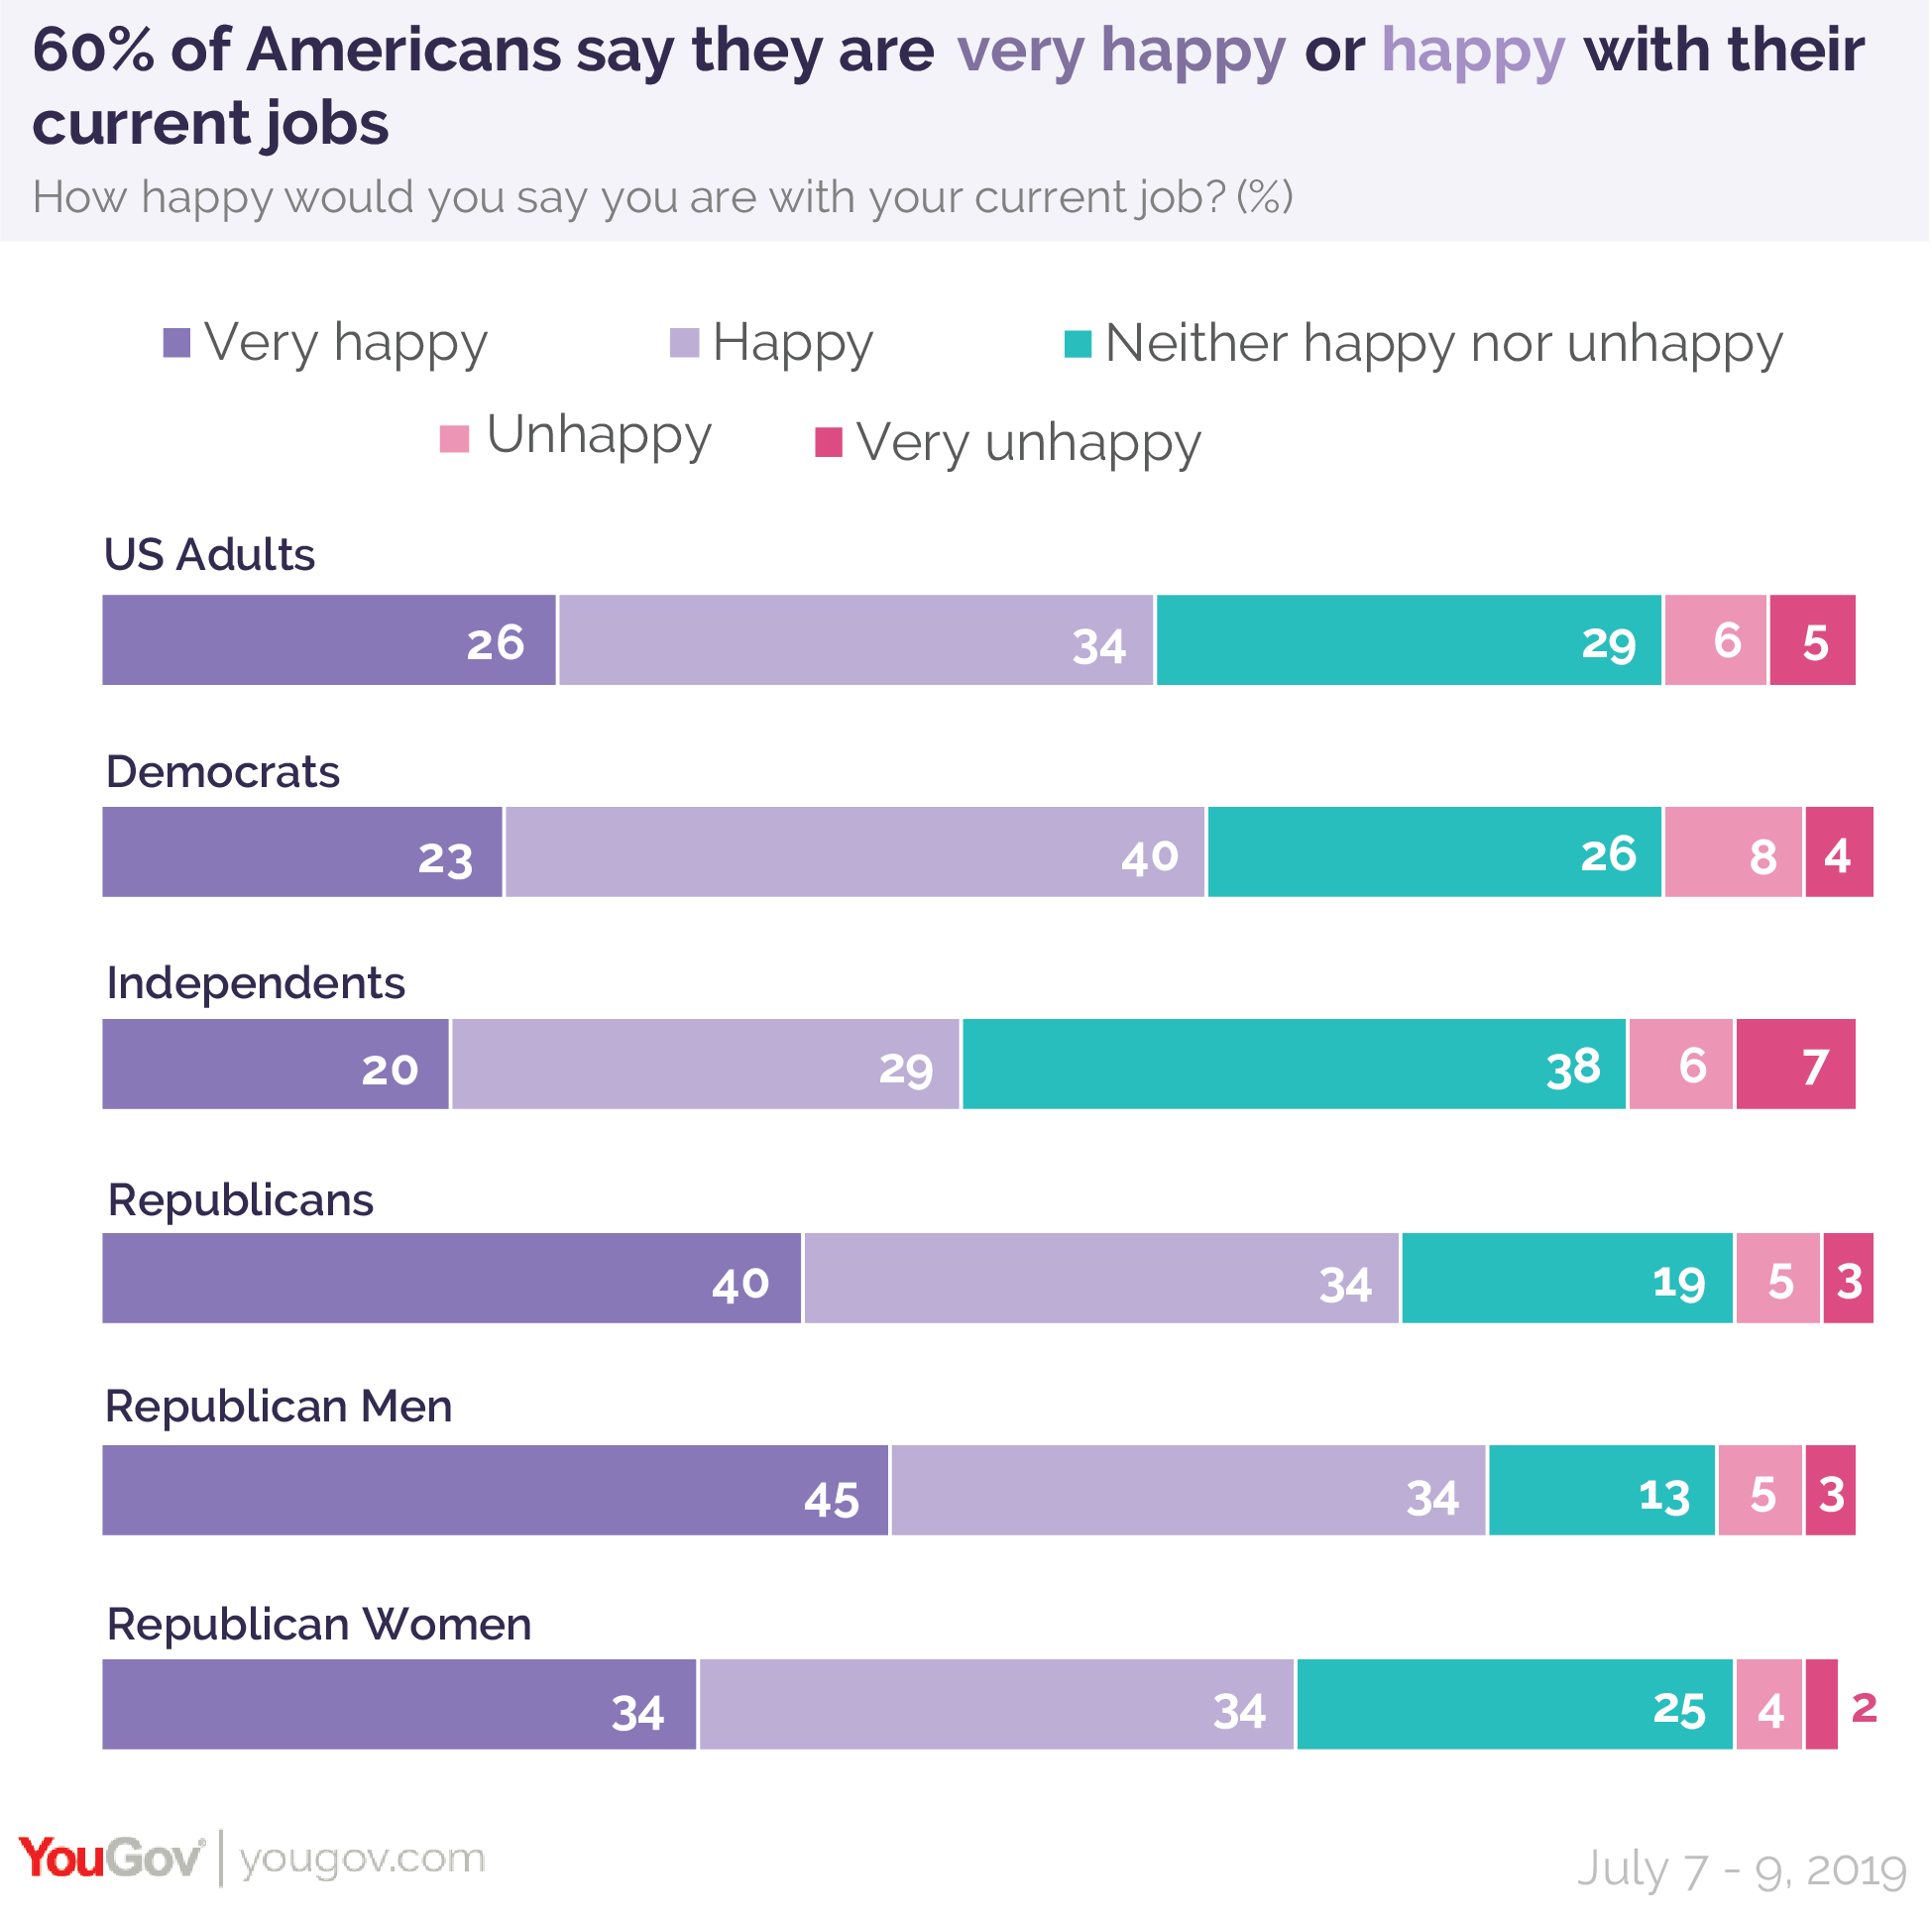 60% of Americans say they are very happy or happy with their current jobs